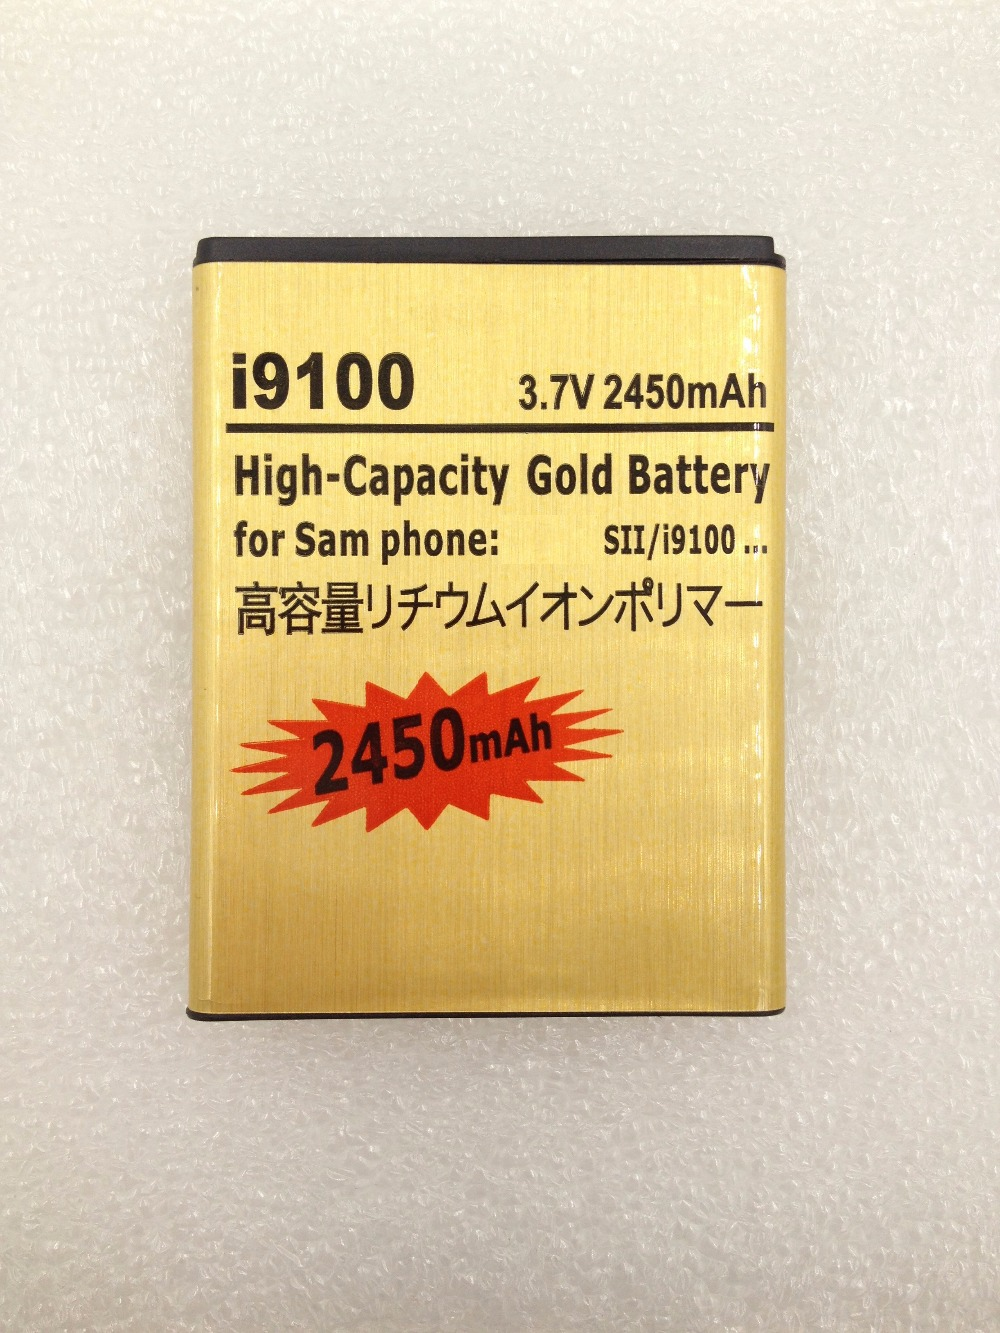 2450mAh Gold Battery For Samsung Galaxy R Galaxy S2 i9100 I9103 Hercule EB-L102GBK(China (Mainland))